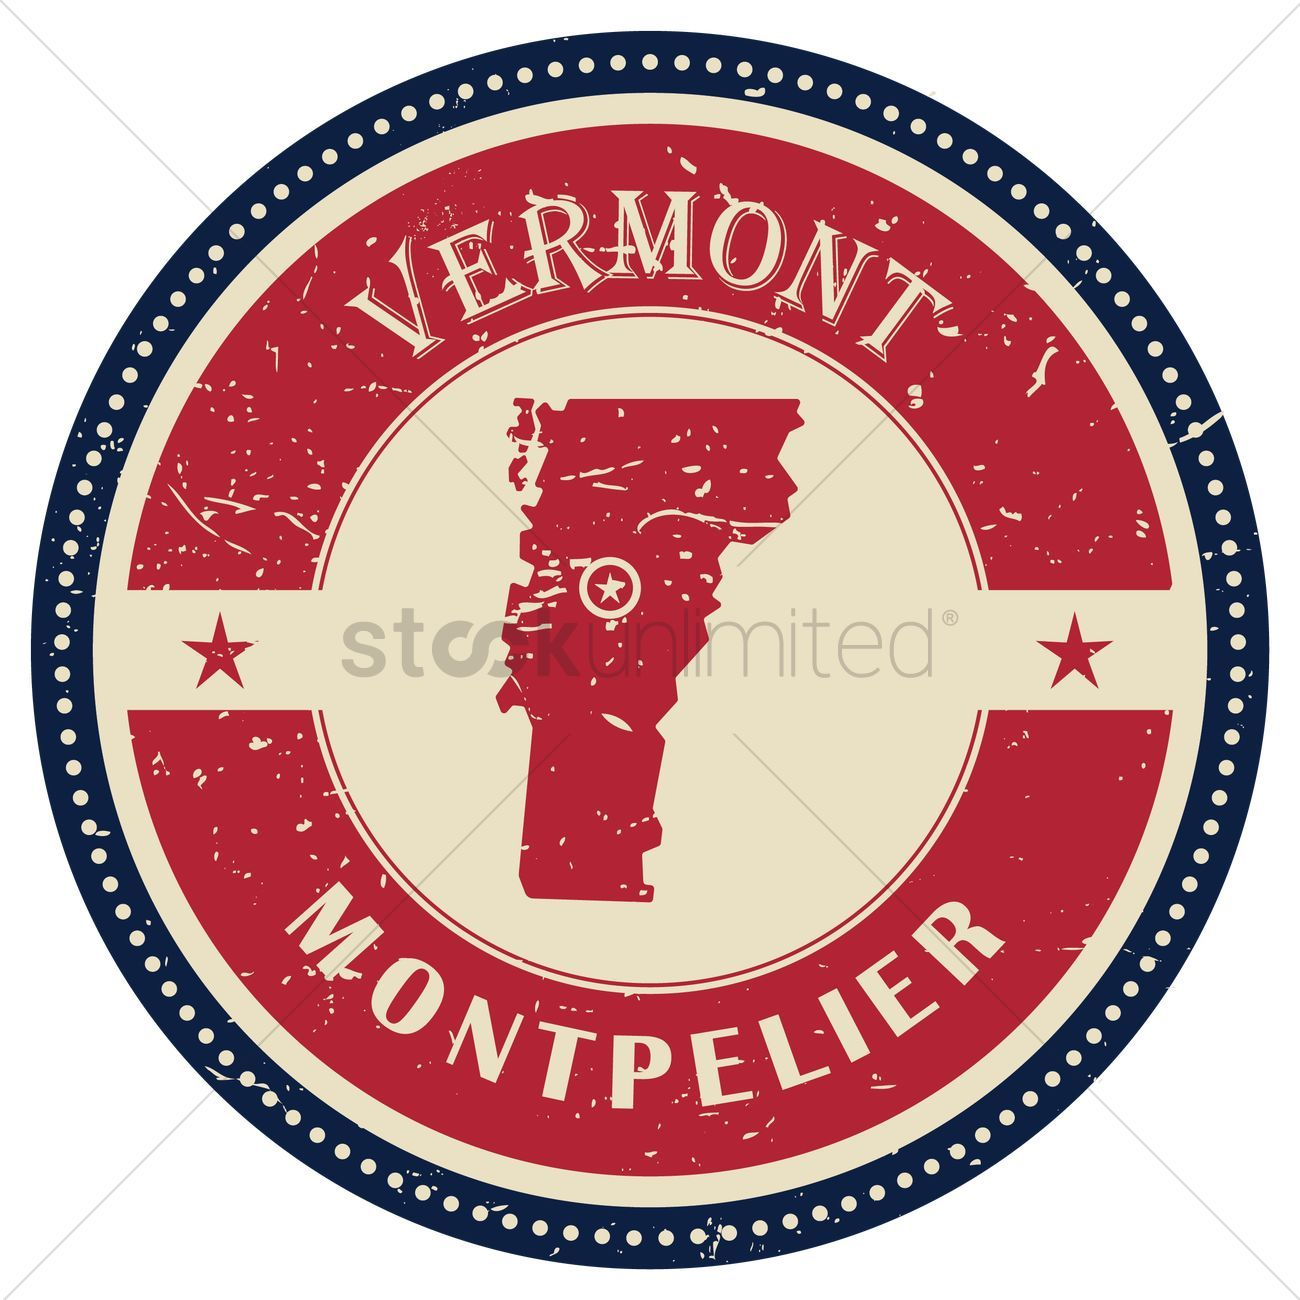 Stamp of vermont state vector illustration , Ad, vermont